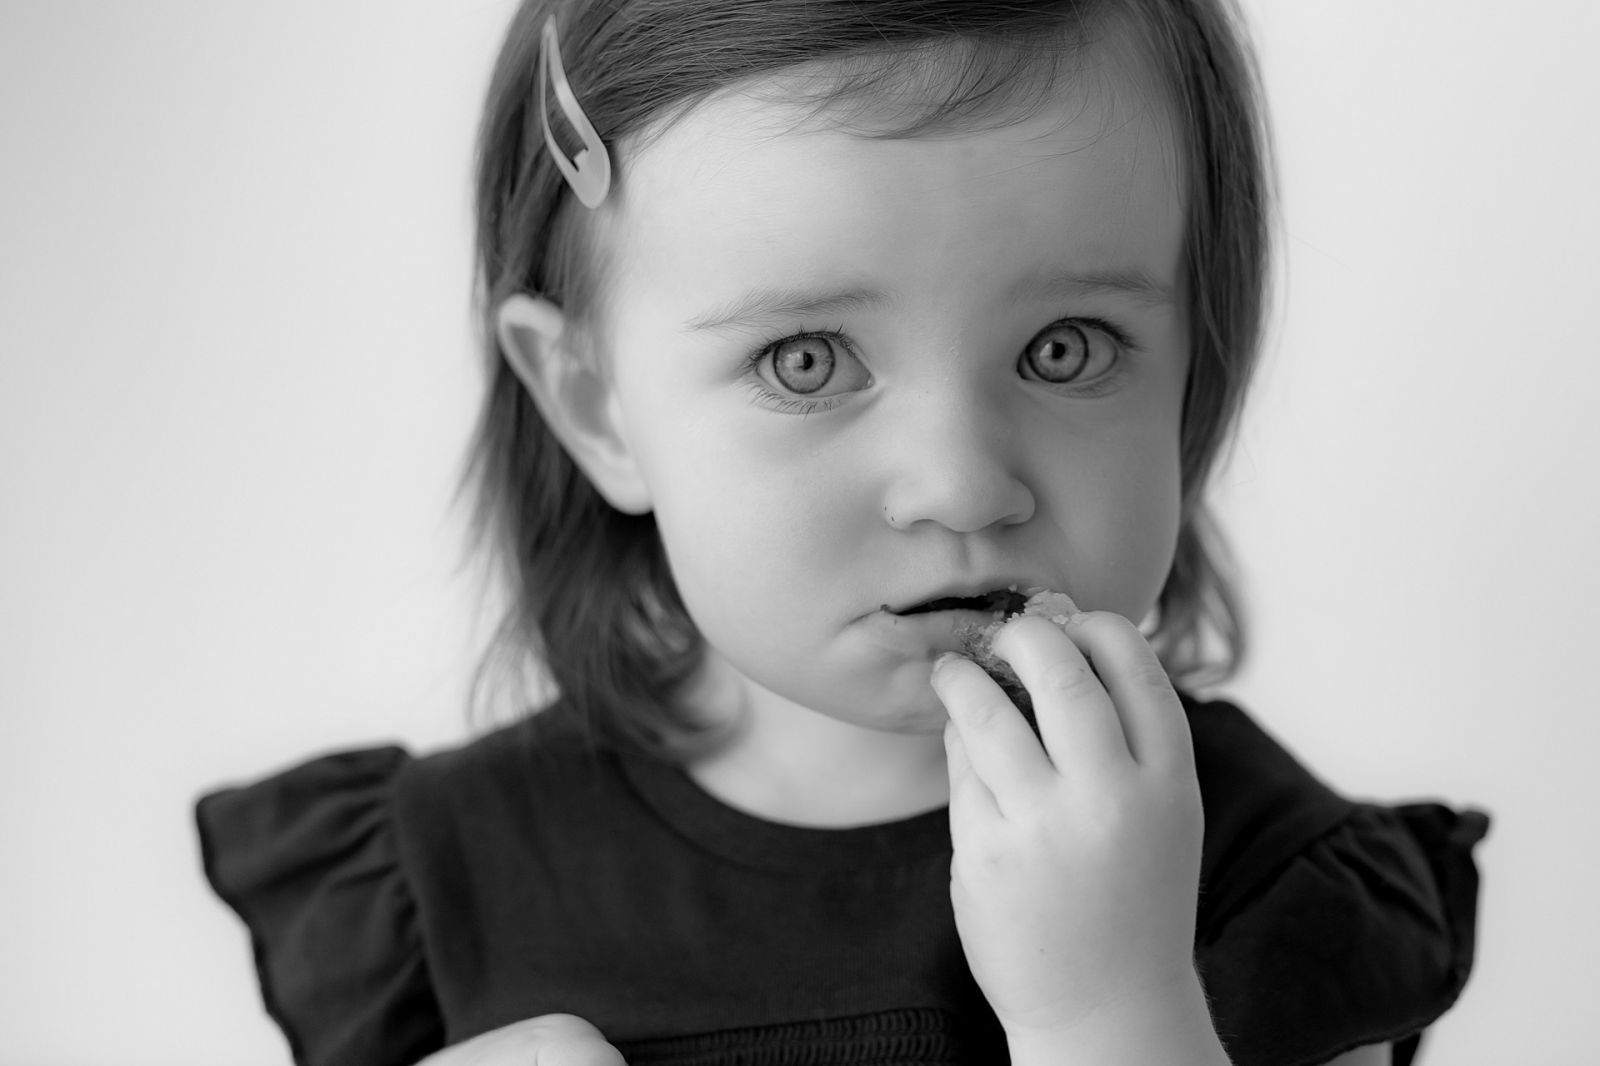 Beautiful girl with blue eyes snacking as the photographer is taking a close up head shot